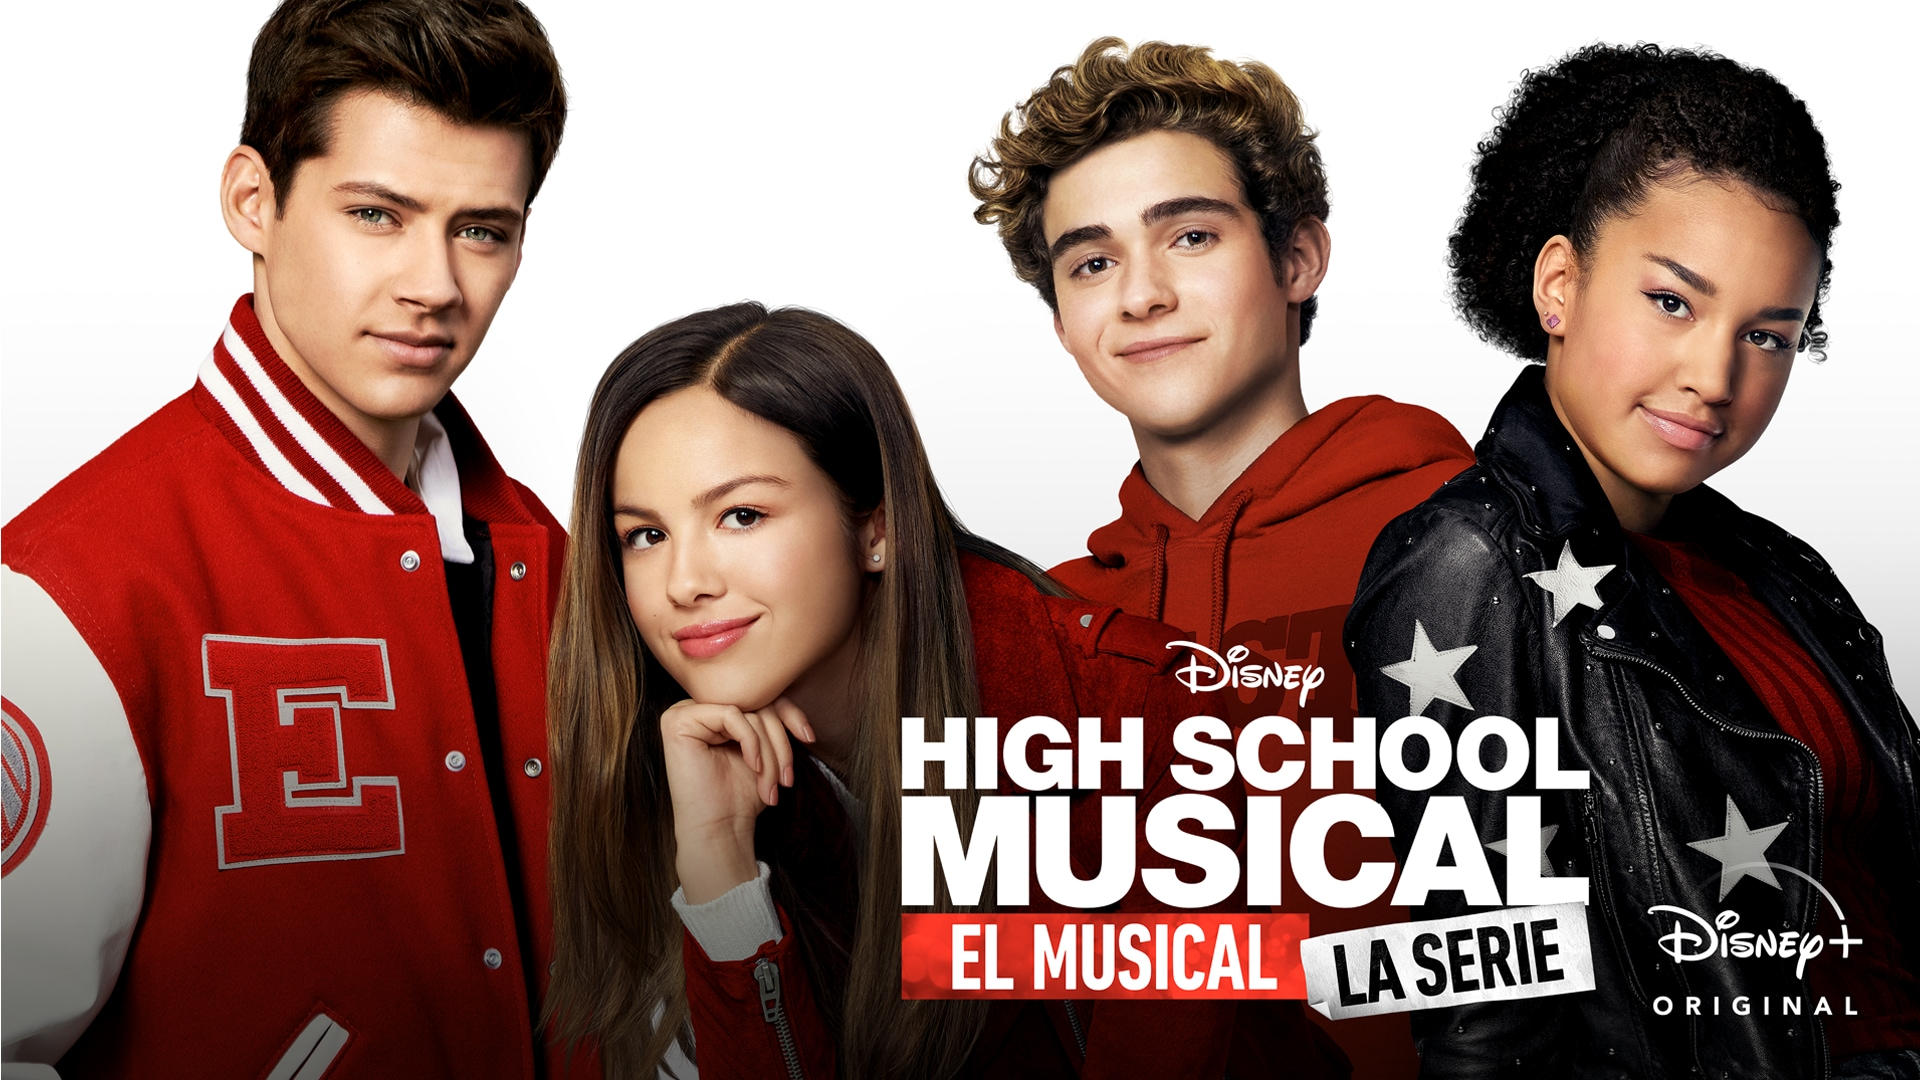 High School Musical: El musical: La serie | Disponible en Disney+ a partir del 17 de noviembre Draft